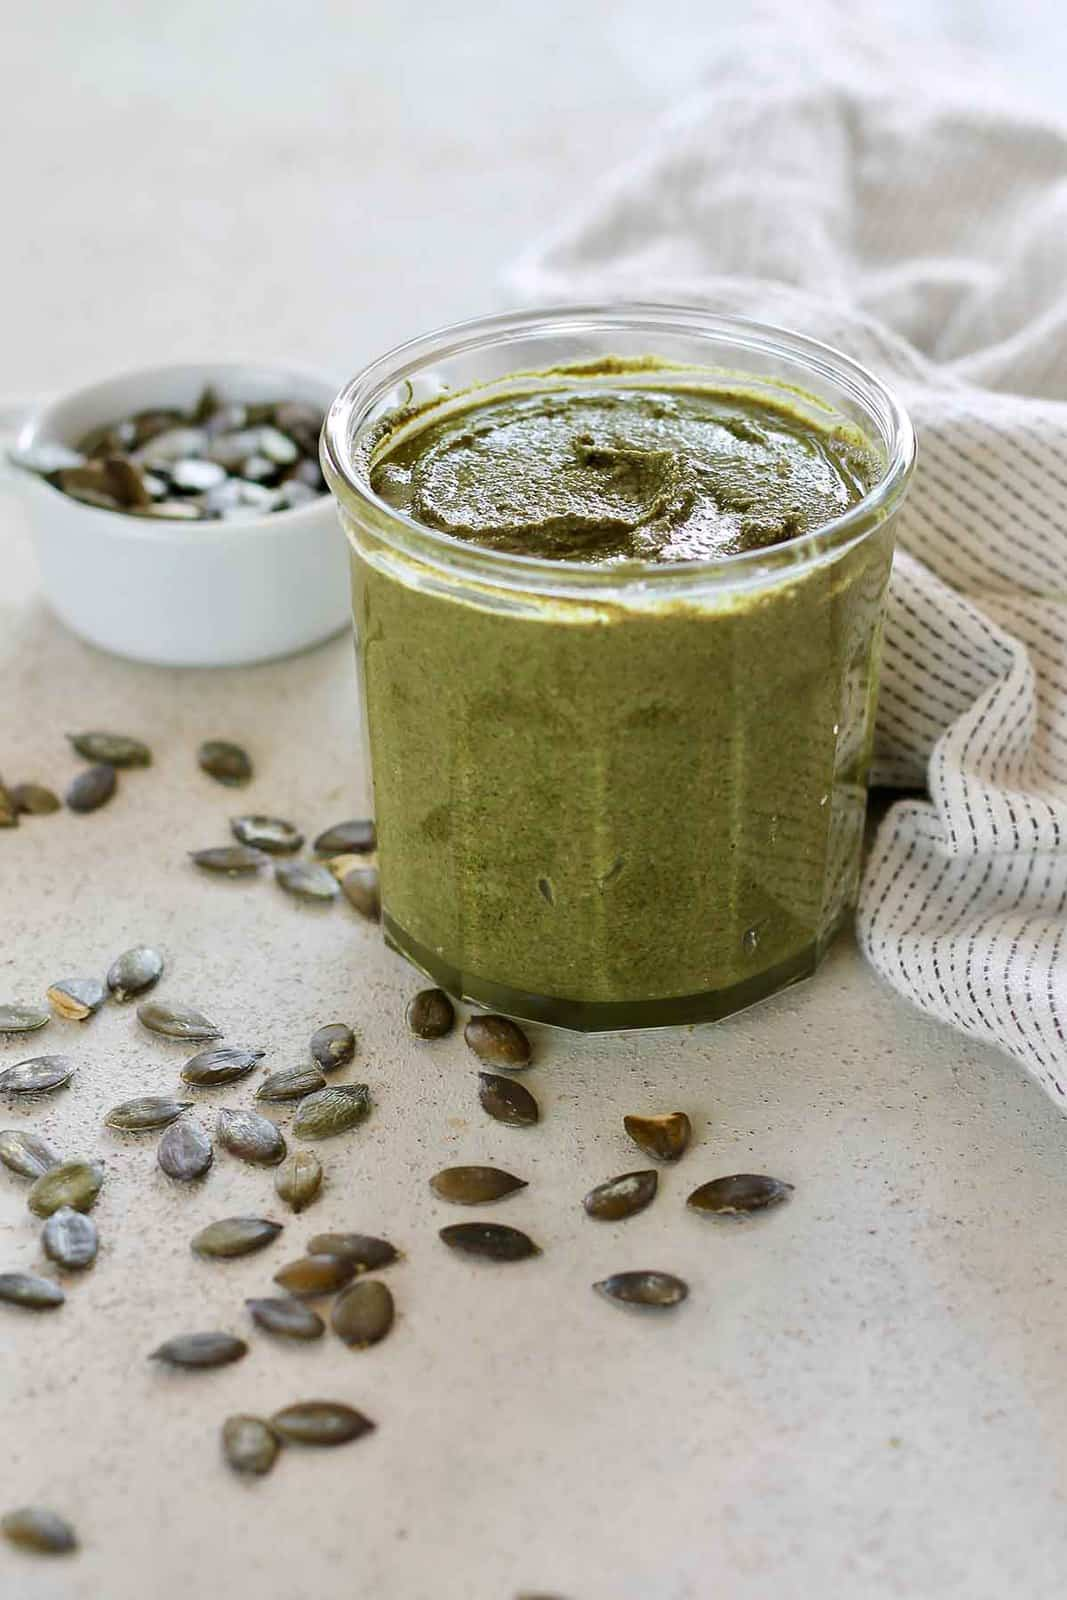 homemade pumpkin seed butter in a glass jar with pumpkin seeds scattered around